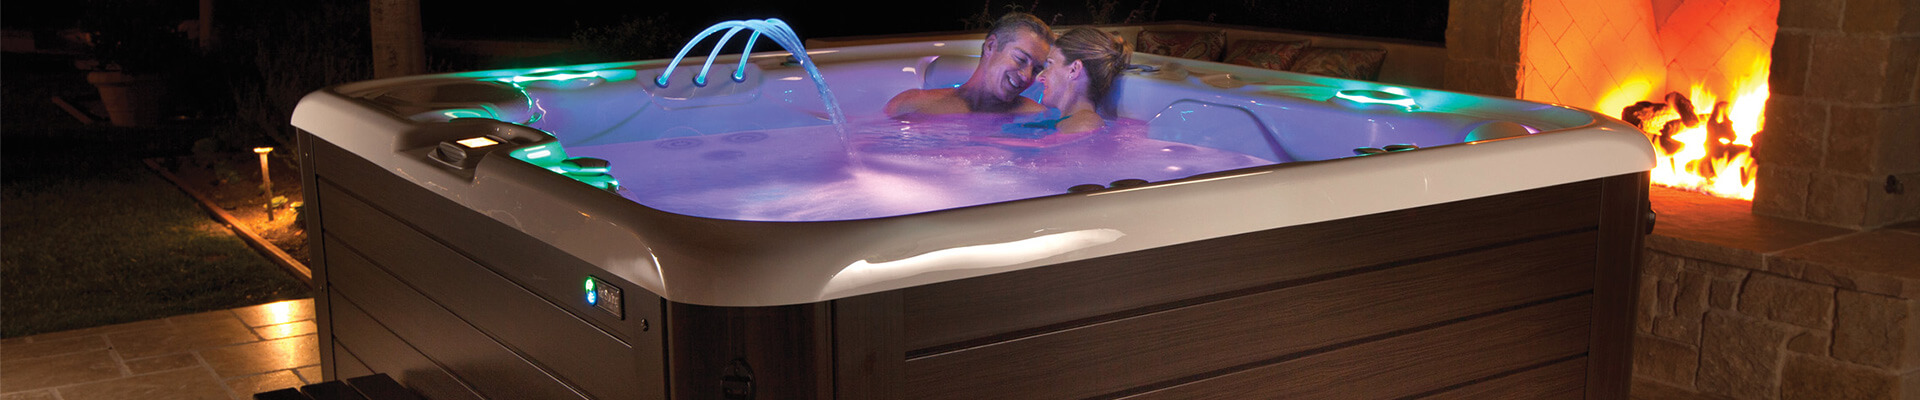 3 Reasons to Consider a Backyard Spa for Senior Health, Large Hot Tubs Madison